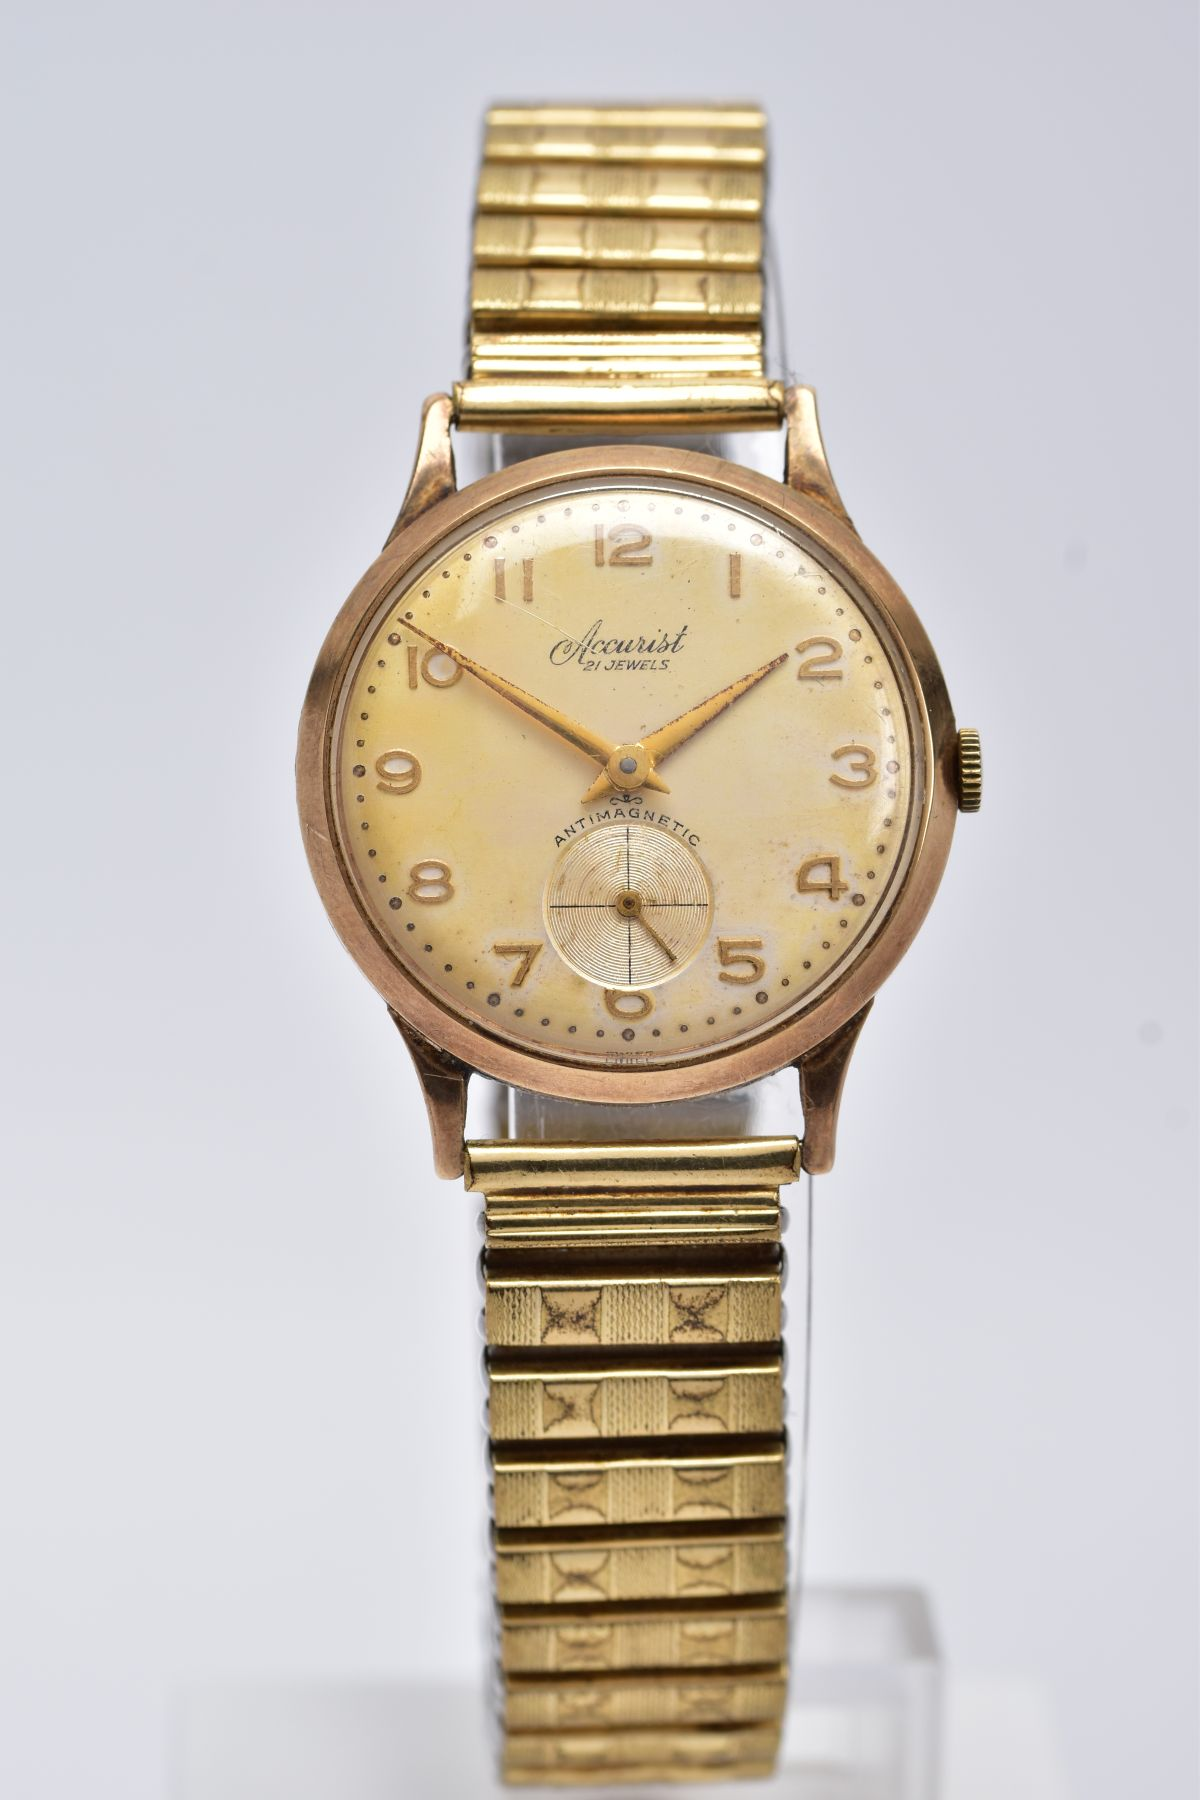 A GENTS 9CT GOLD 'ACCURIST' WRISTWATCH, hand wound movement, discoloured silver dial signed '